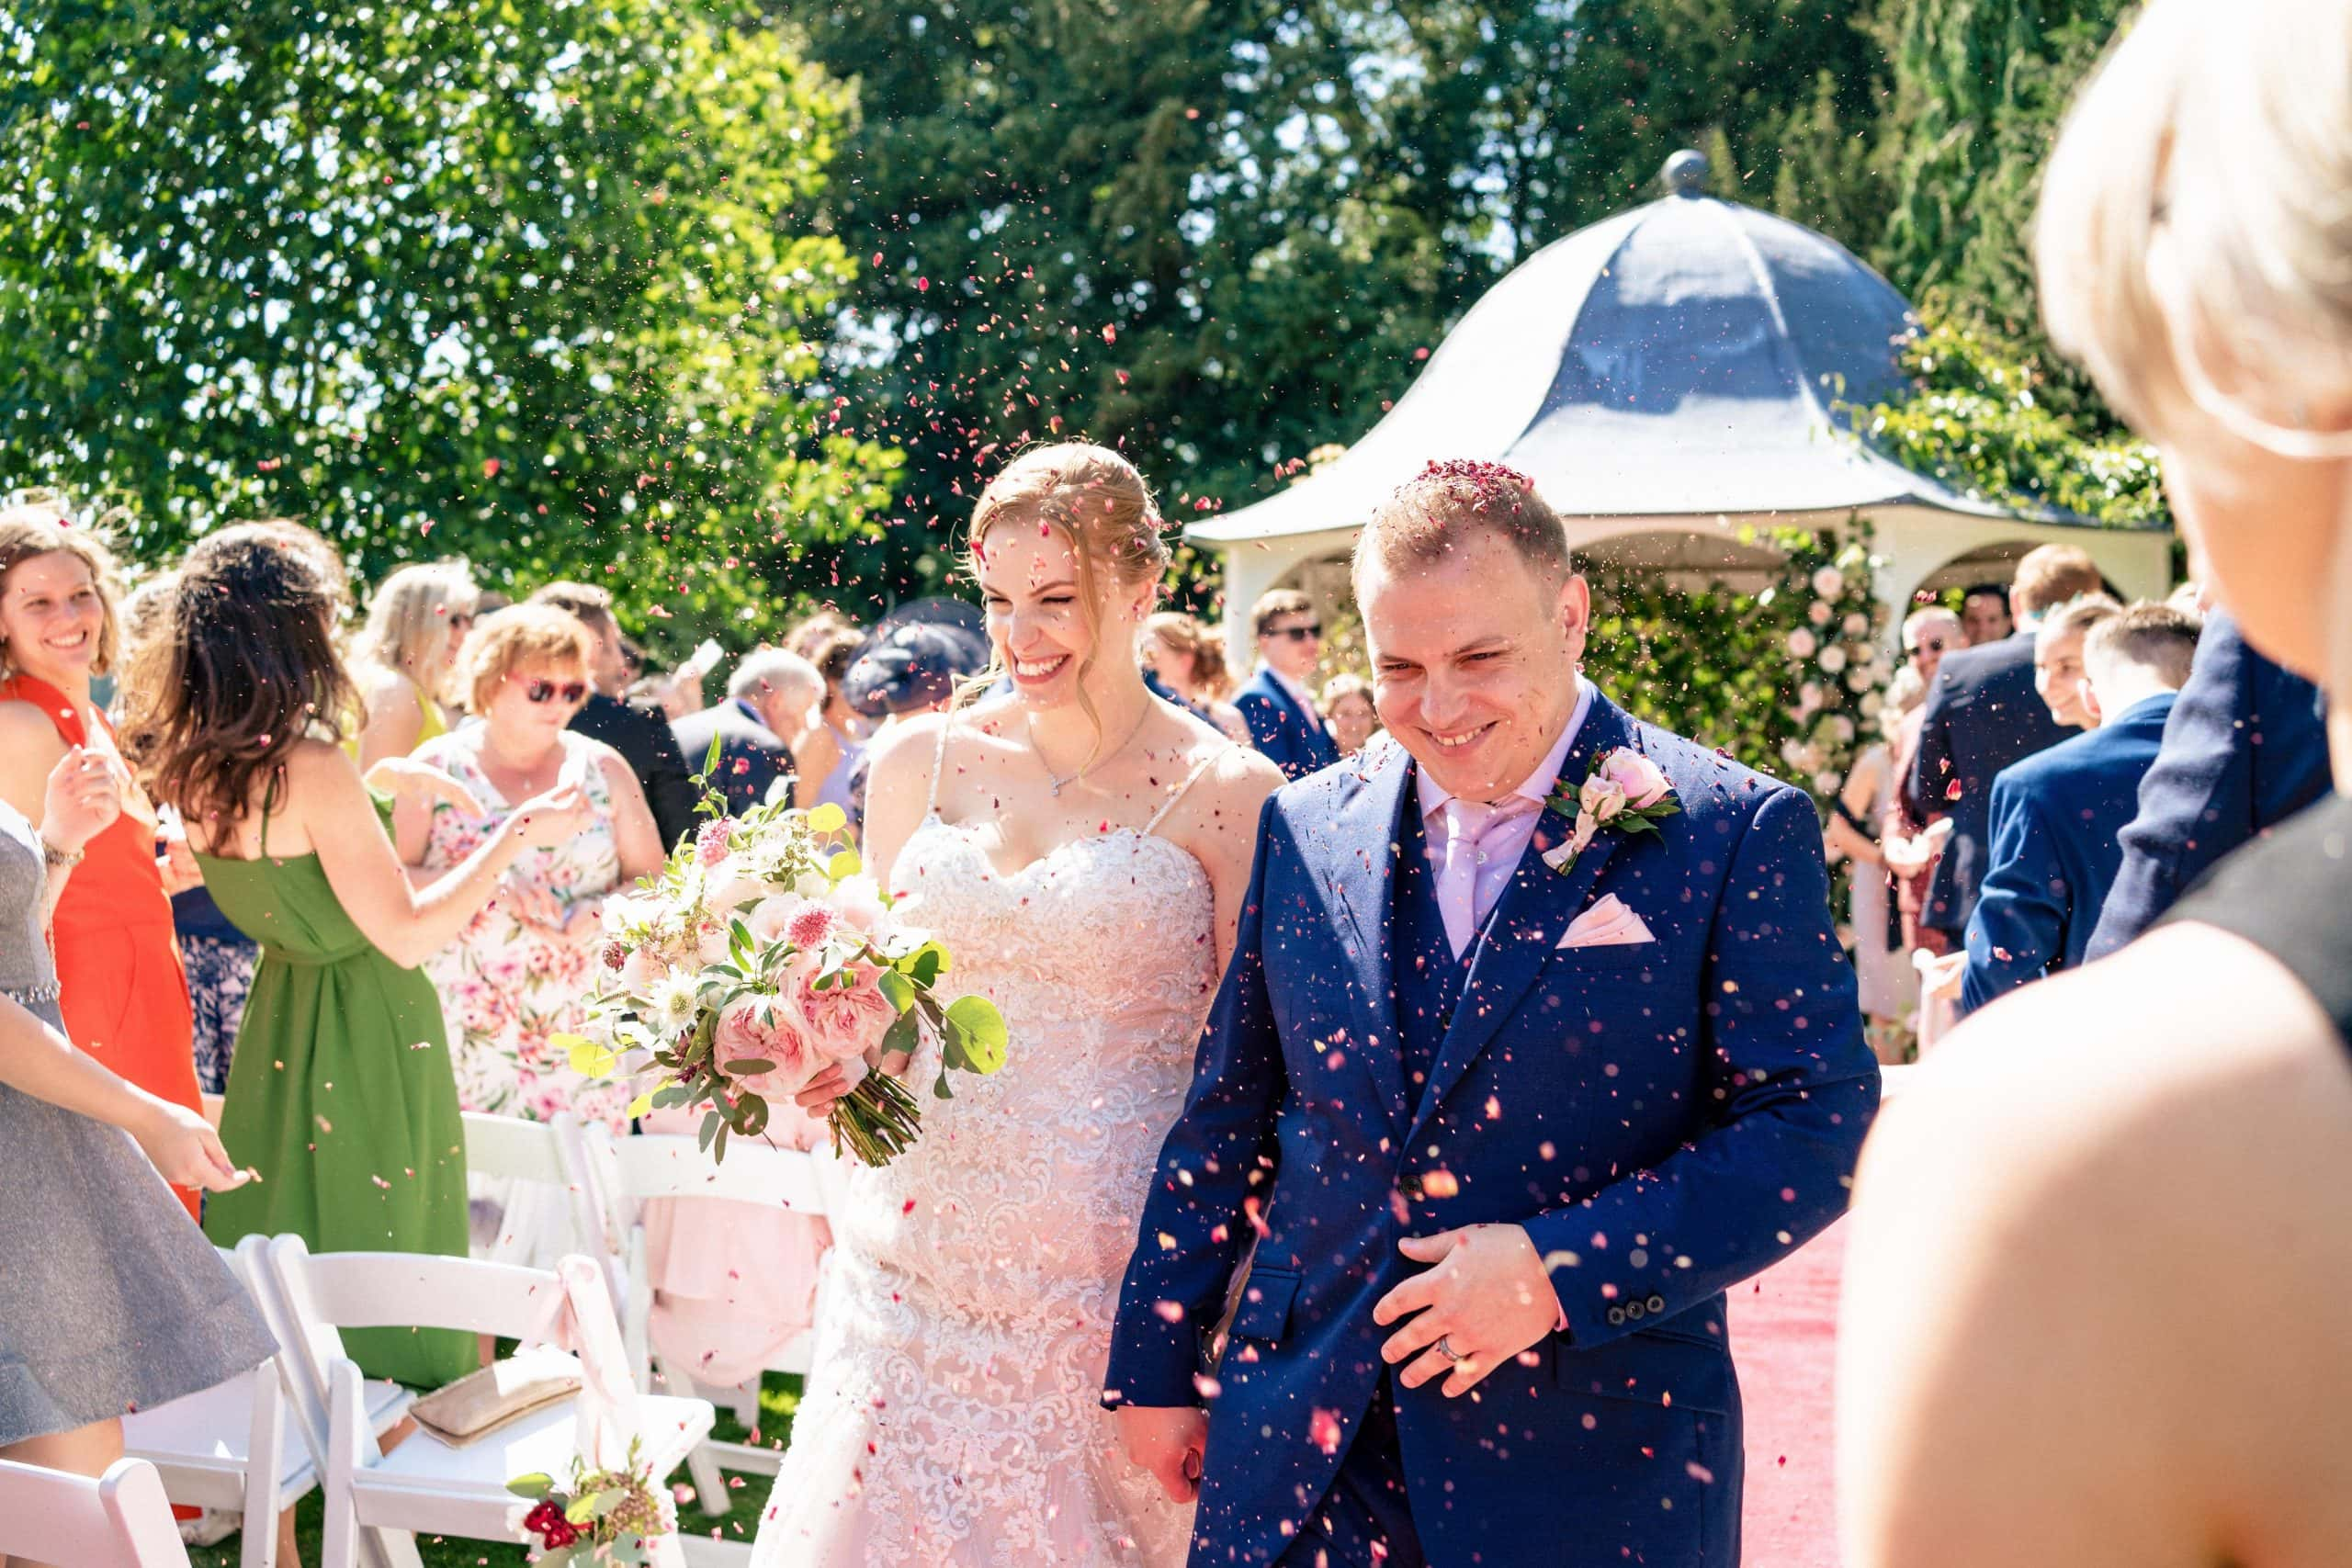 Wedding photography at Prestwold Hall - bride and groom confetti outside in the grounds of prestwold hall